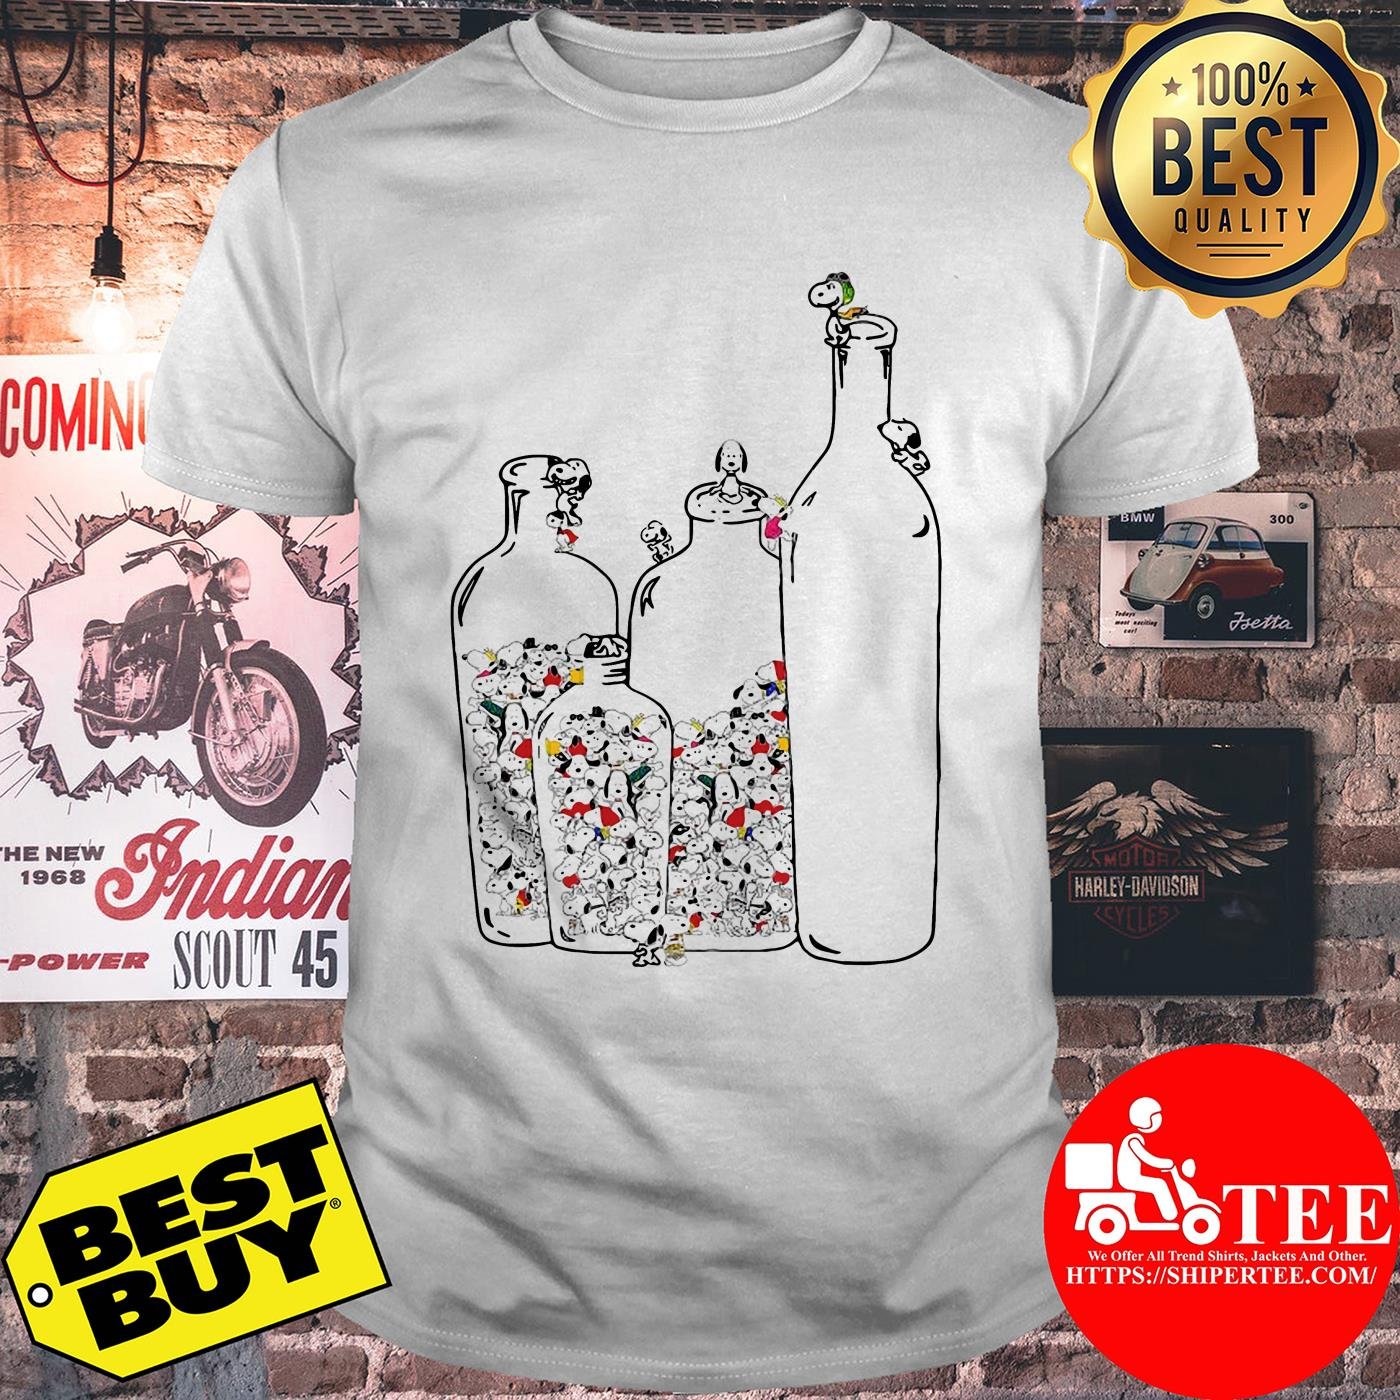 Snoopy in Bottles shirt